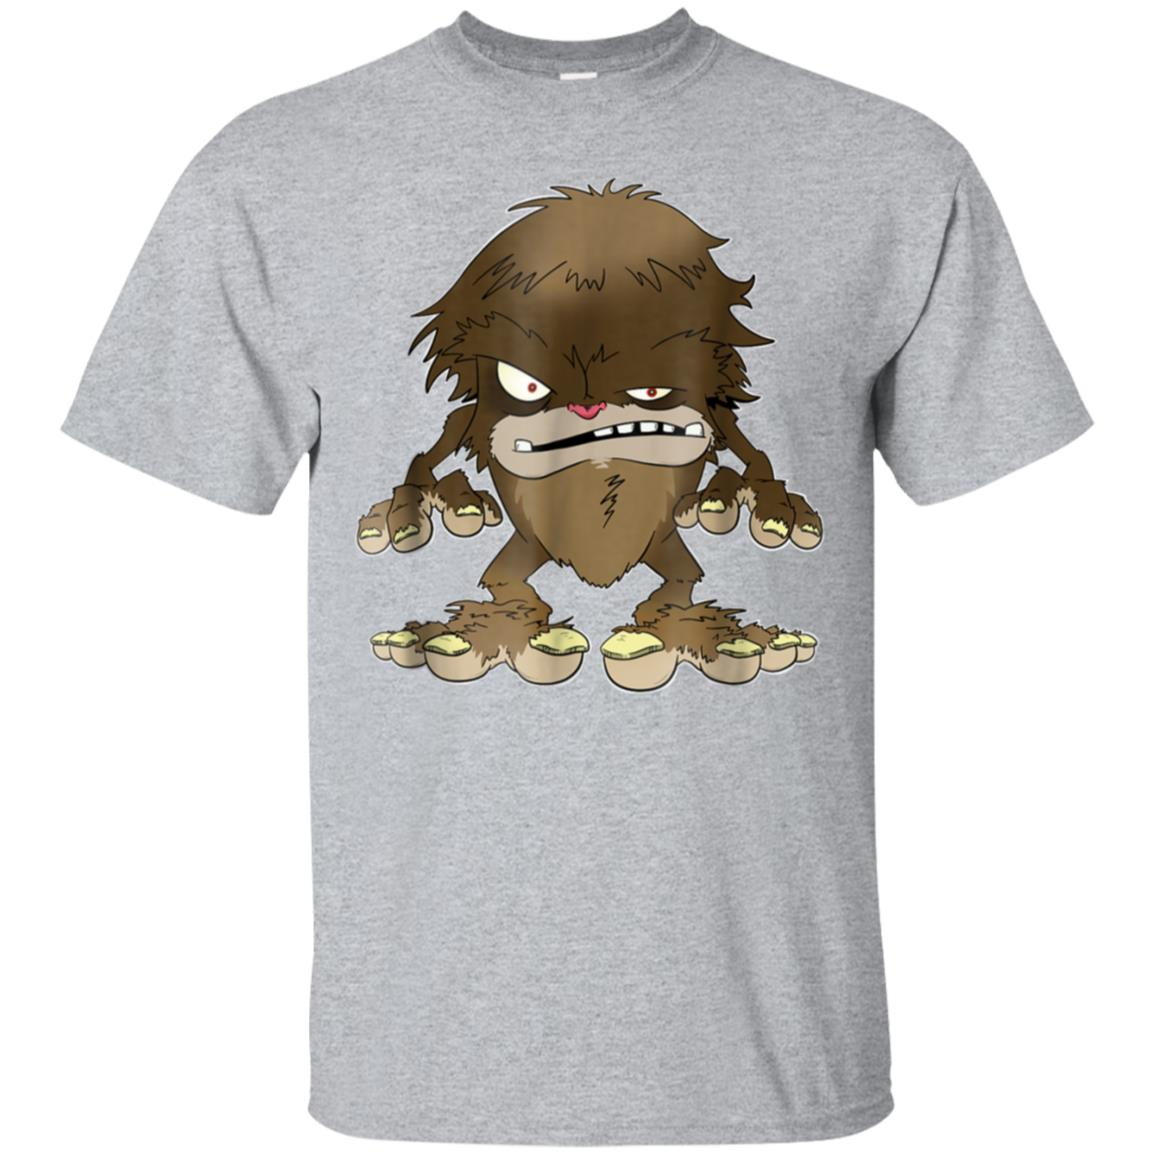 Bigfoot - A Hairy Scary Monster T-Shirt 99promocode